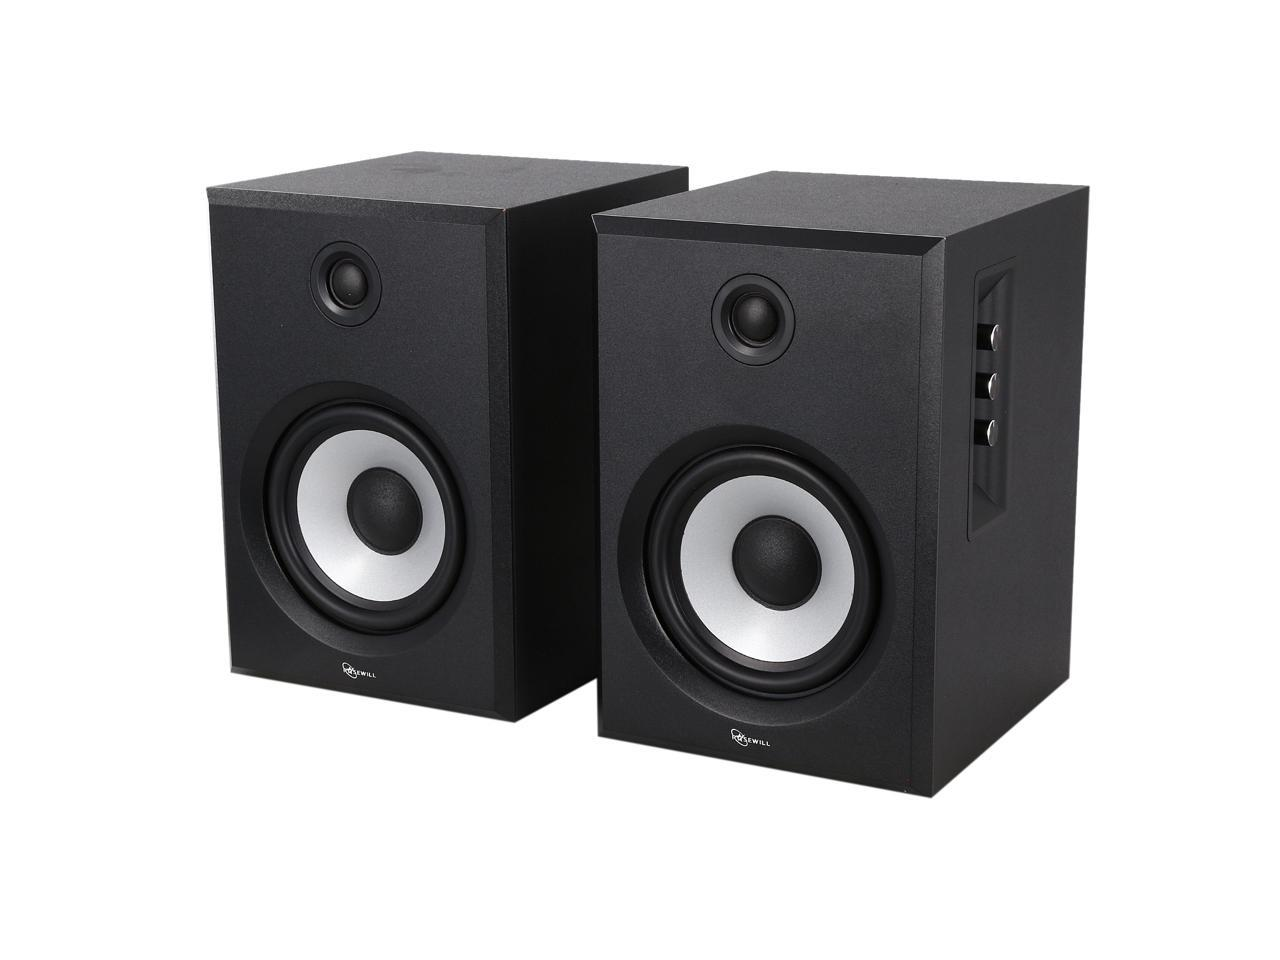 Rosewill BZ-201 2.0 Ch. Bluetooth Speaker System